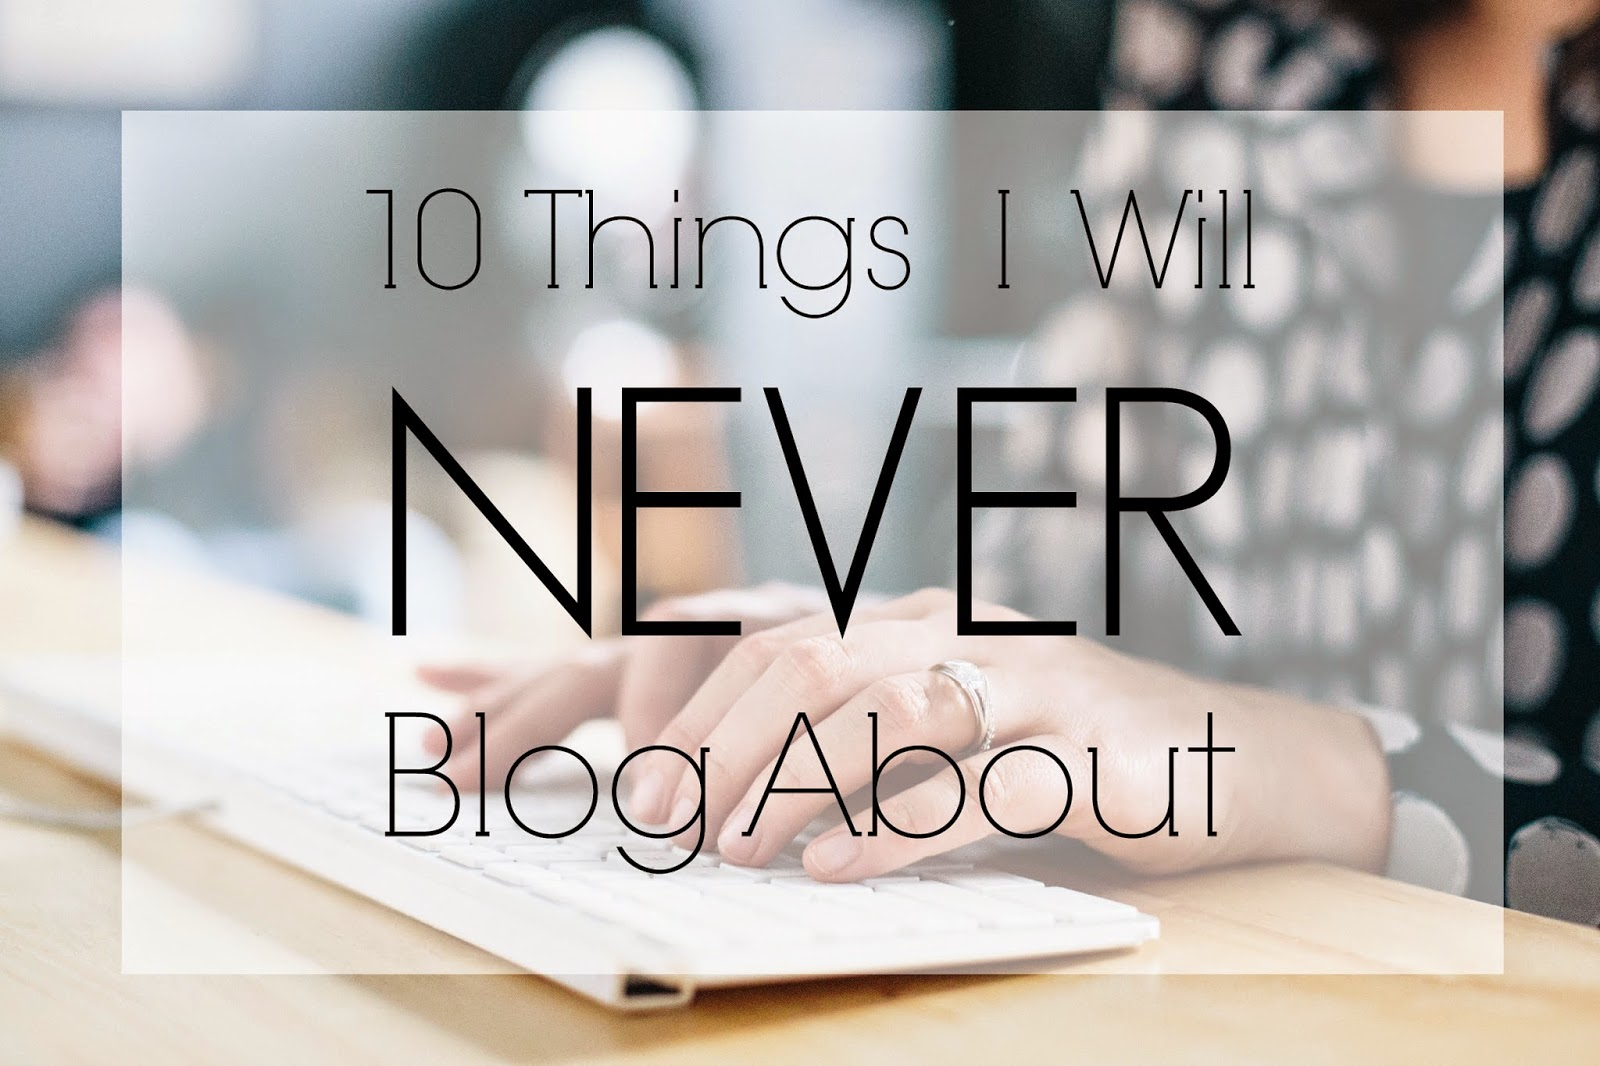 Things I will never blog about